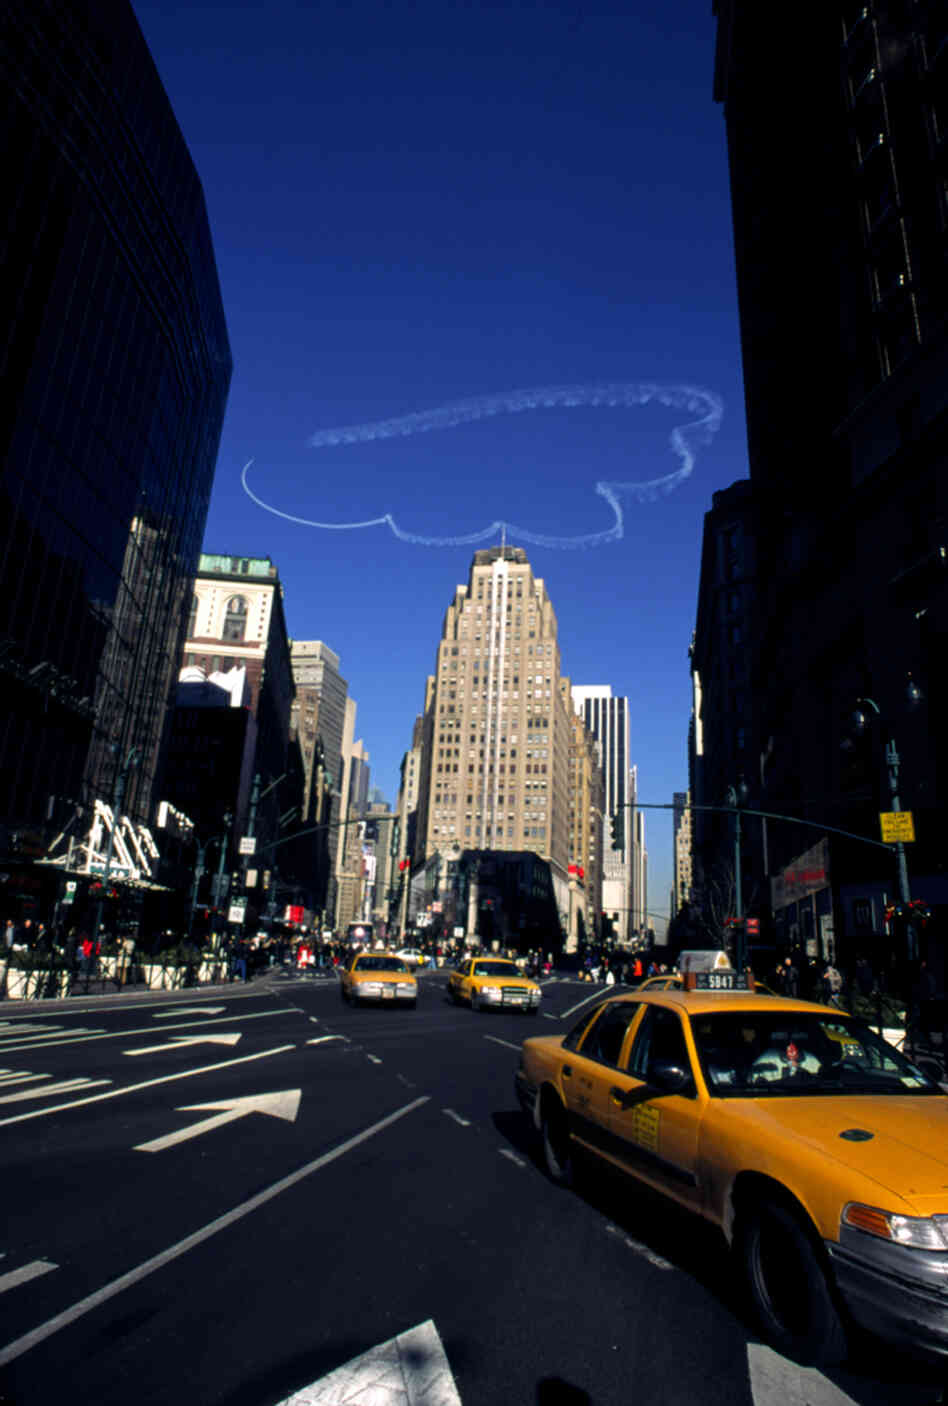 Clouds by Vik Muniz, skywriting over New York City